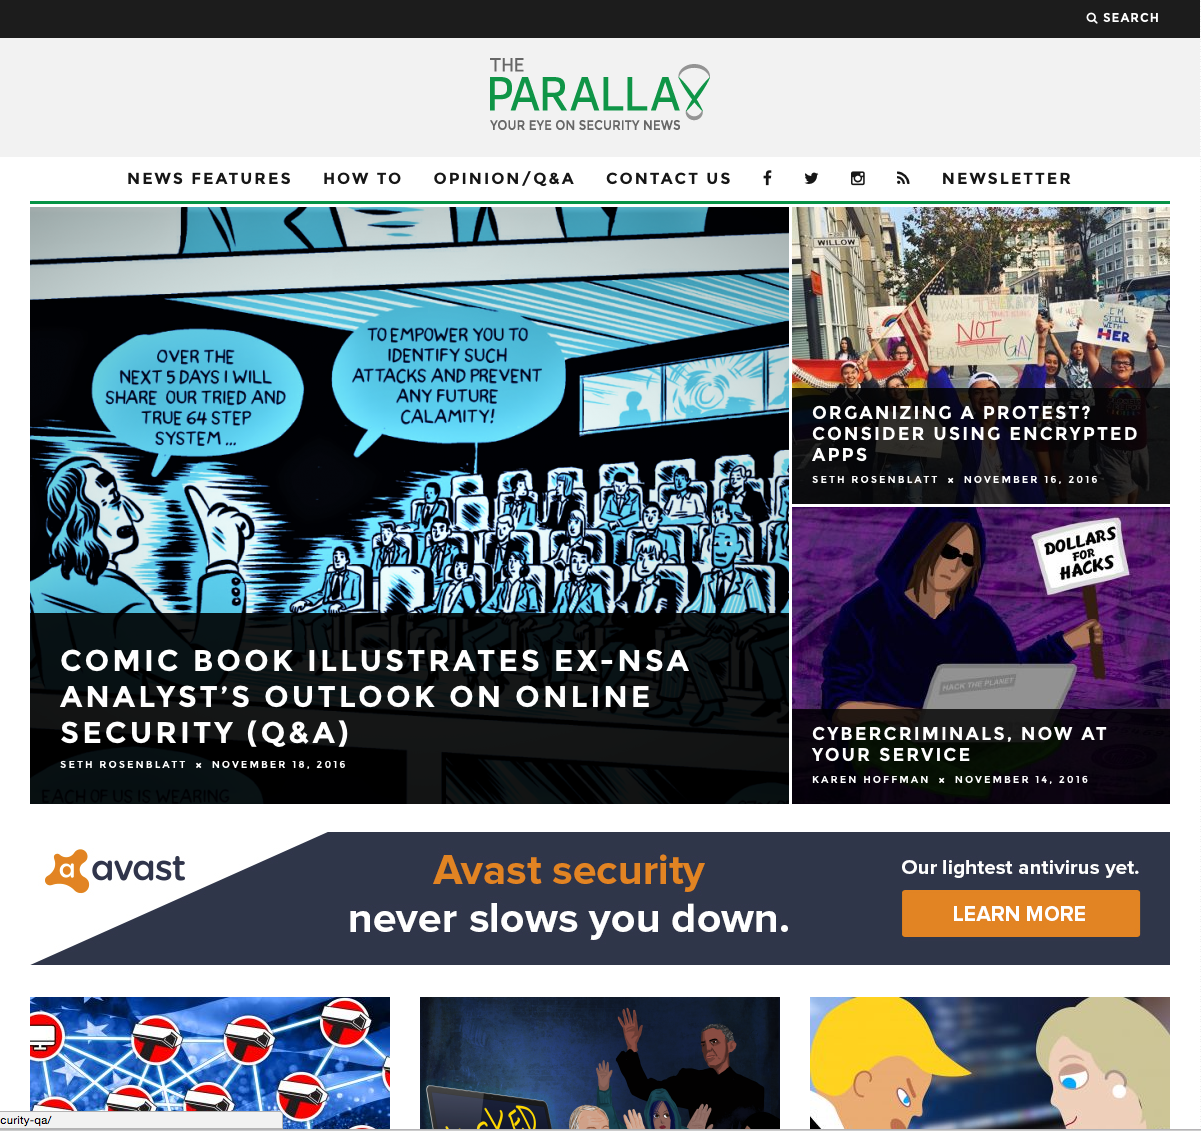 The Parallax: Your Eye on Security News